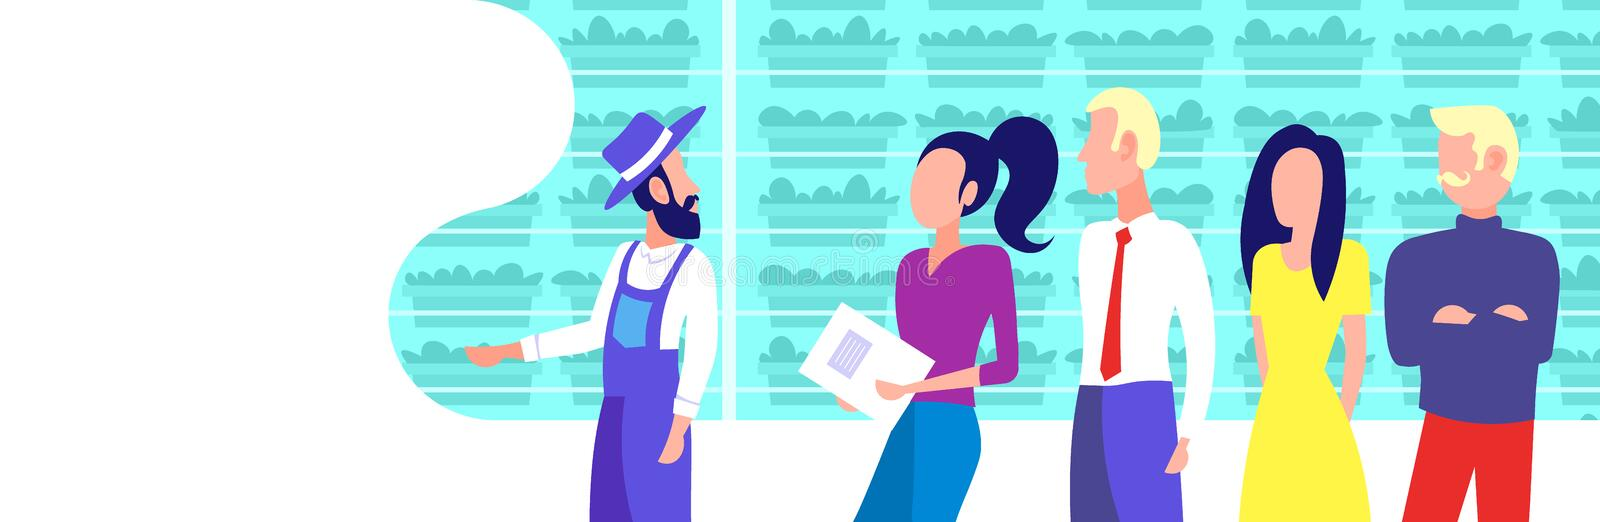 Farmer in uniform with agriculture engineers group inspecting growing plants vertical farm organic hydroponic vegetables. Modern greenhouse interior horizontal vector illustration